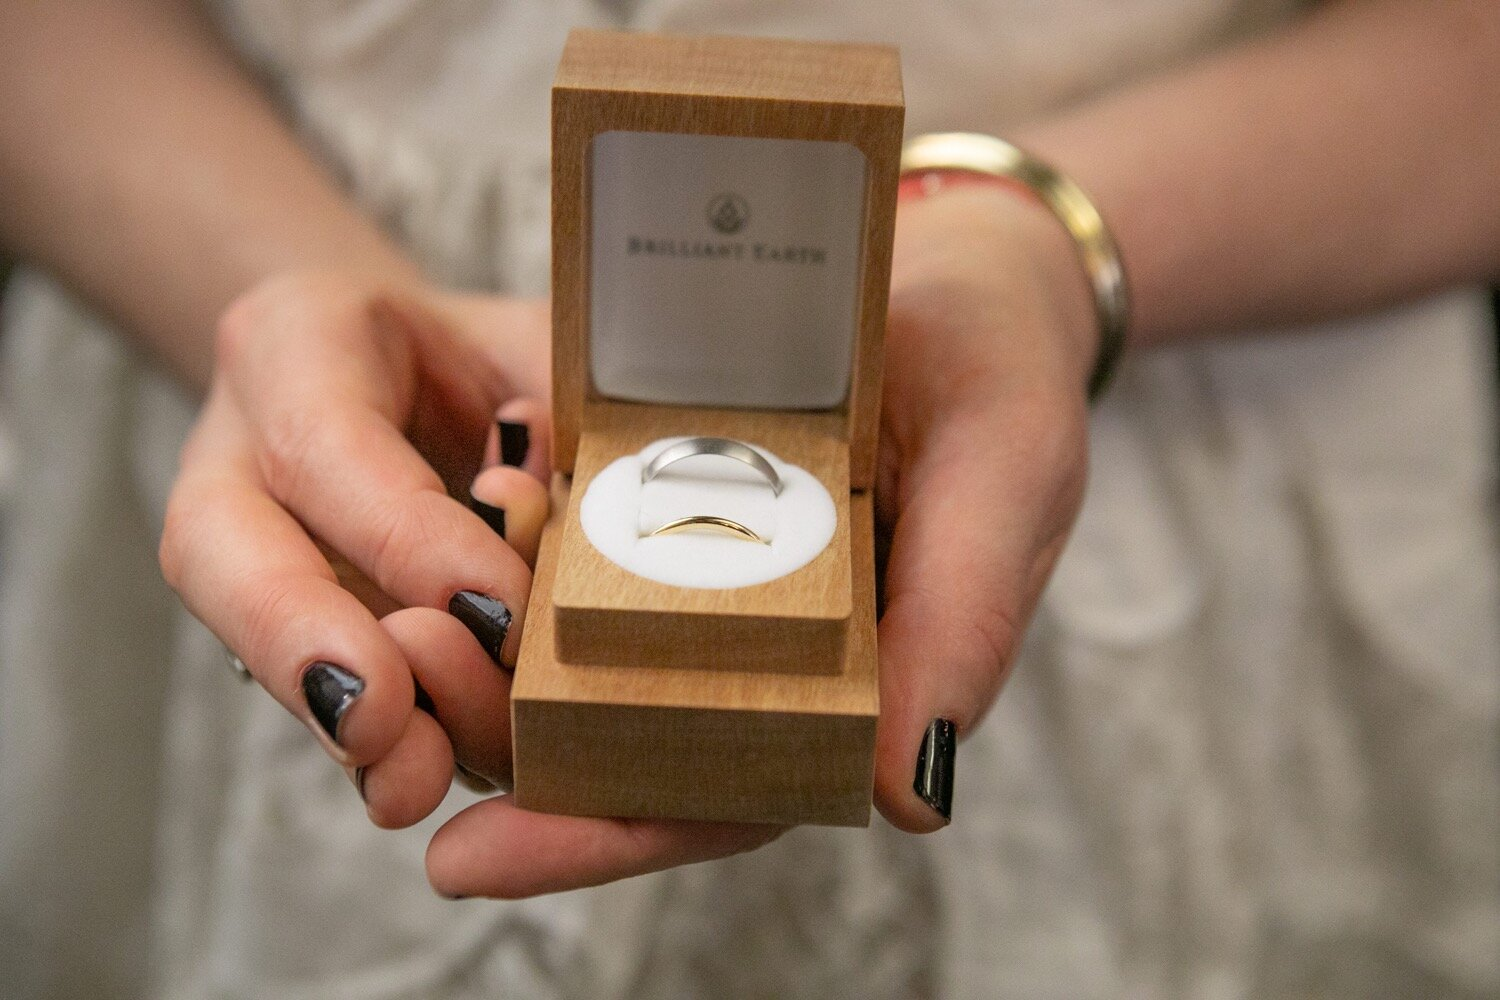 Bride and groom wedding bands from Brilliant Earth.